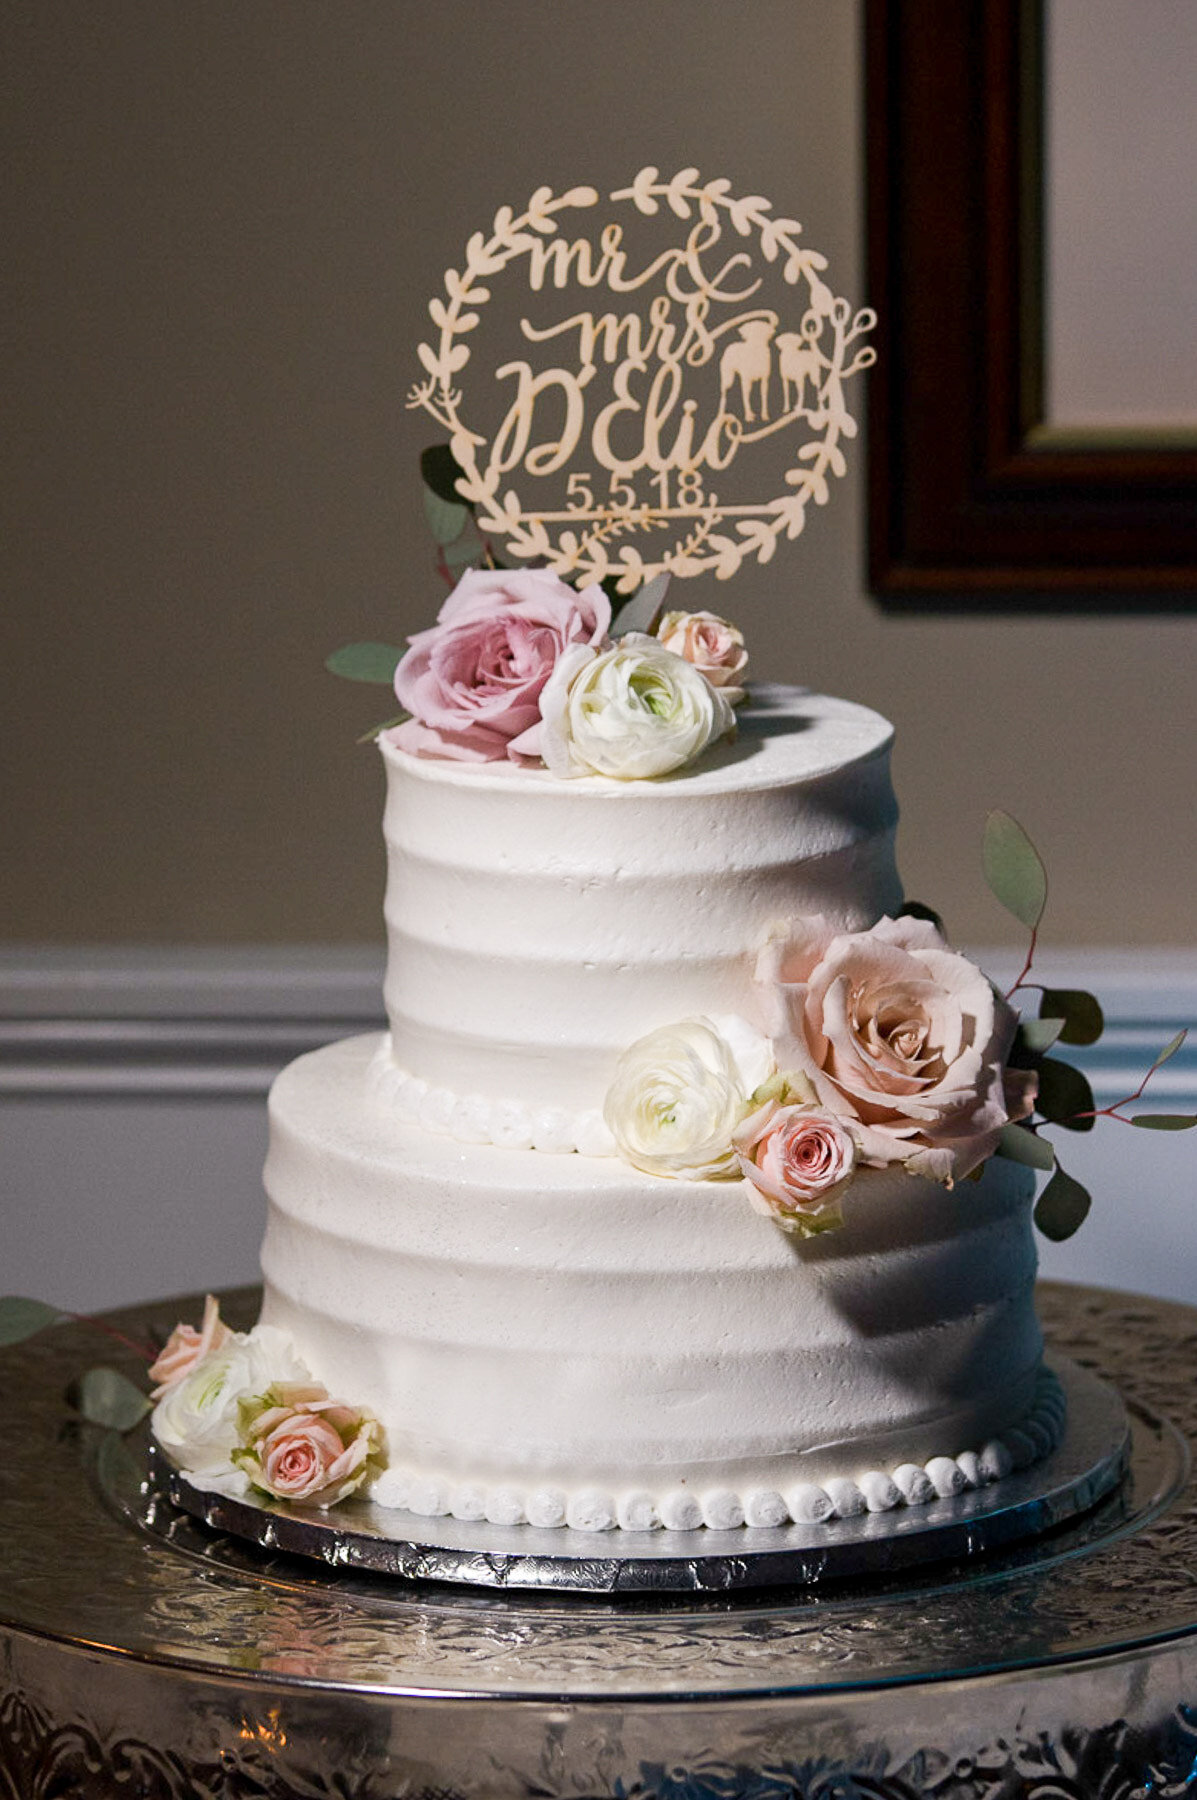 Jenna and Rick's decadent wedding cake presented during the reception at the Brant Beach Yacht Club